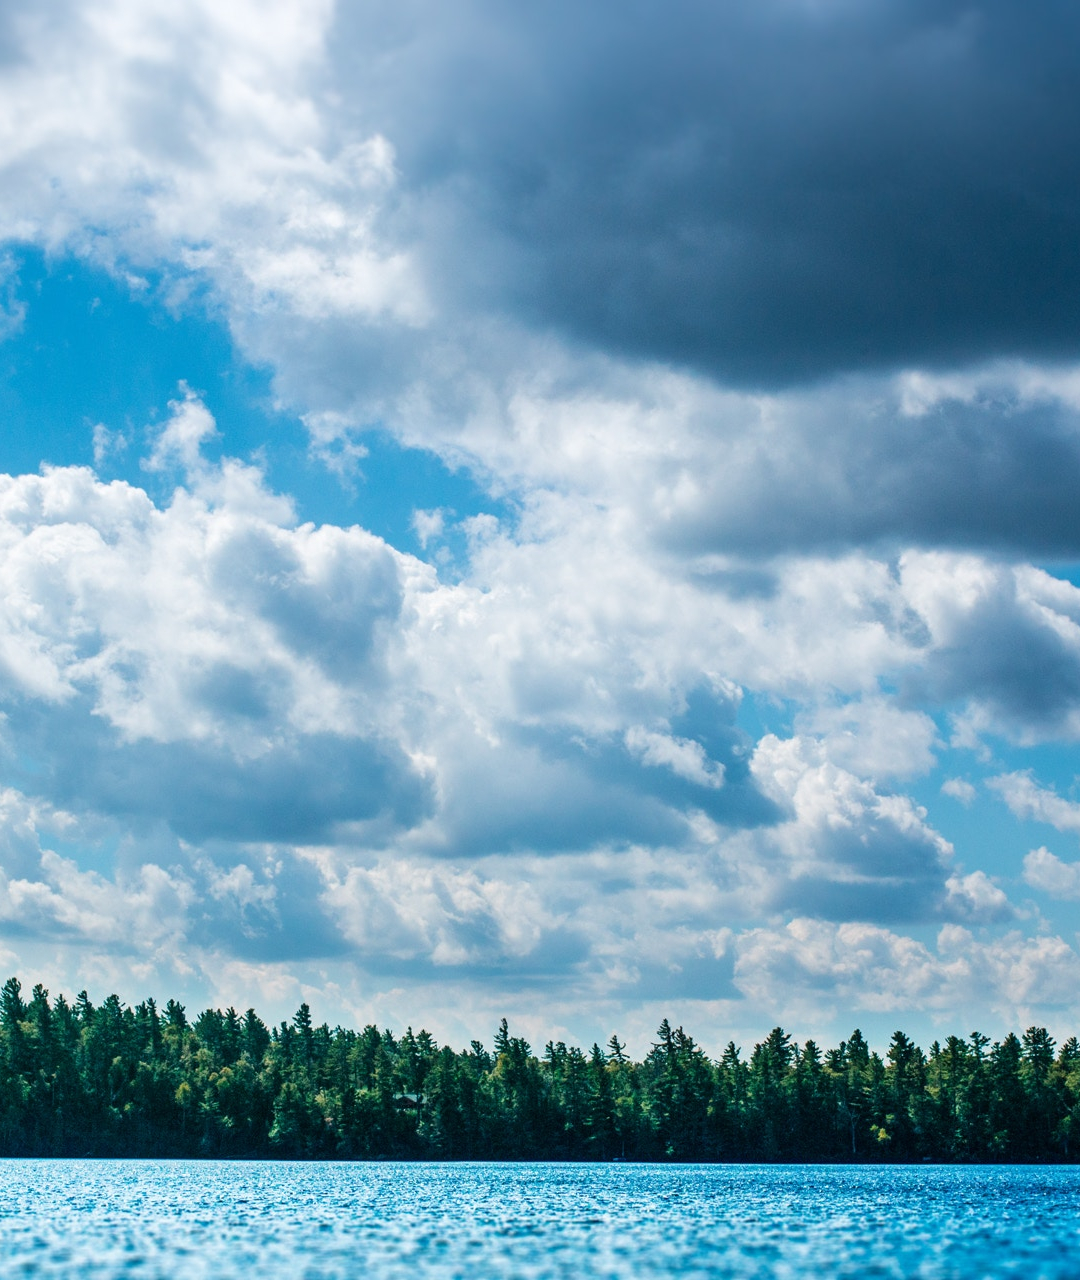 Clouds, Trees And Water iPhone Wallpaper